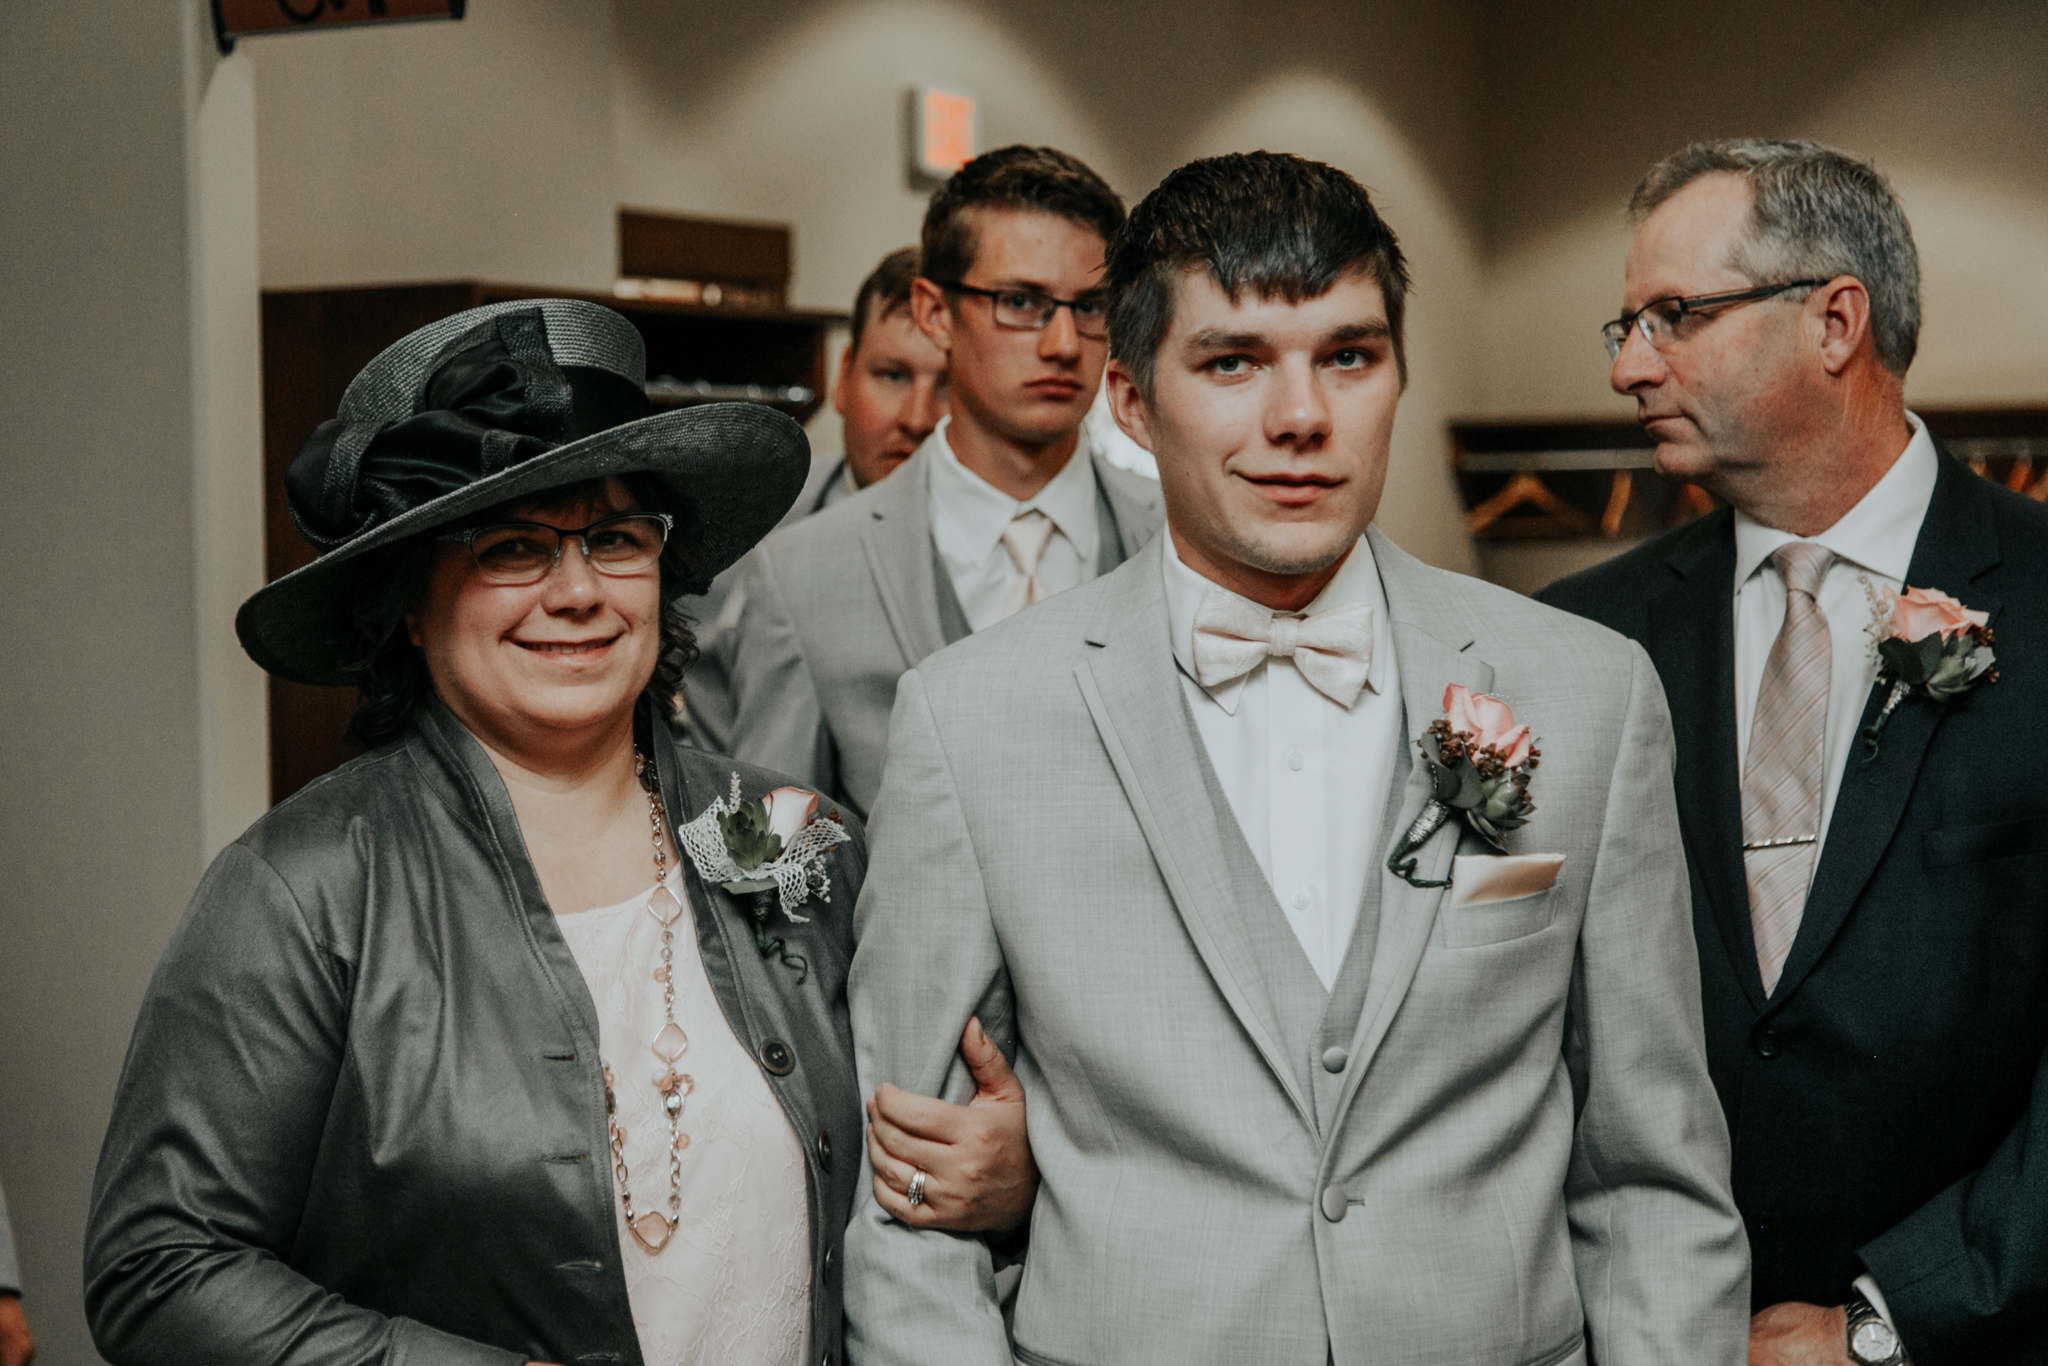 lethbridge-wedding-photographer-love-and-be-loved-photography-steven-marlene-reformed-church-photo-picture-image-14.jpg